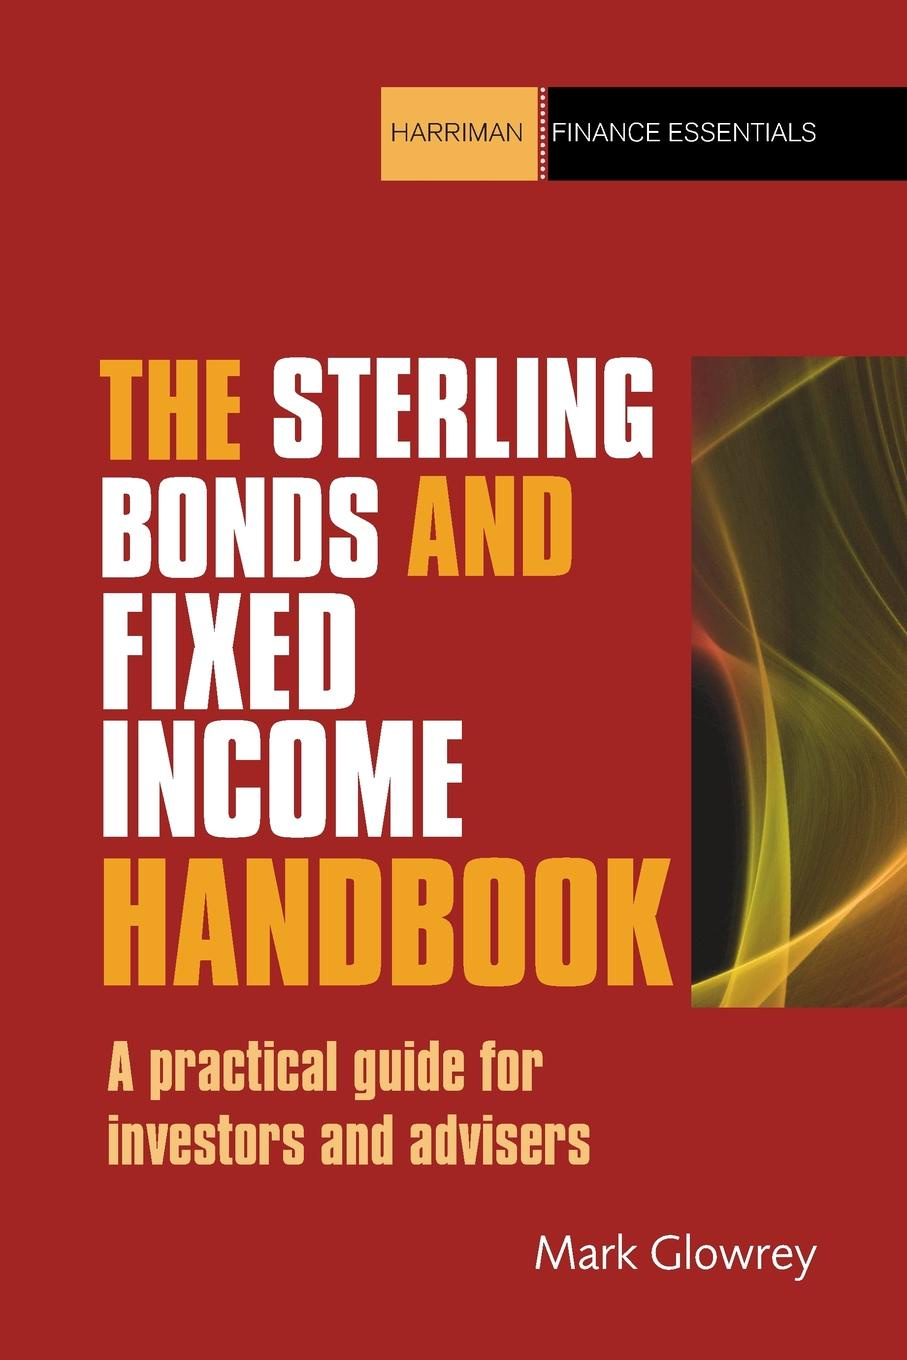 Mark Glowrey The Sterling Bonds and Fixed Income Handbook. A Practical Guide for Investors and Advisers